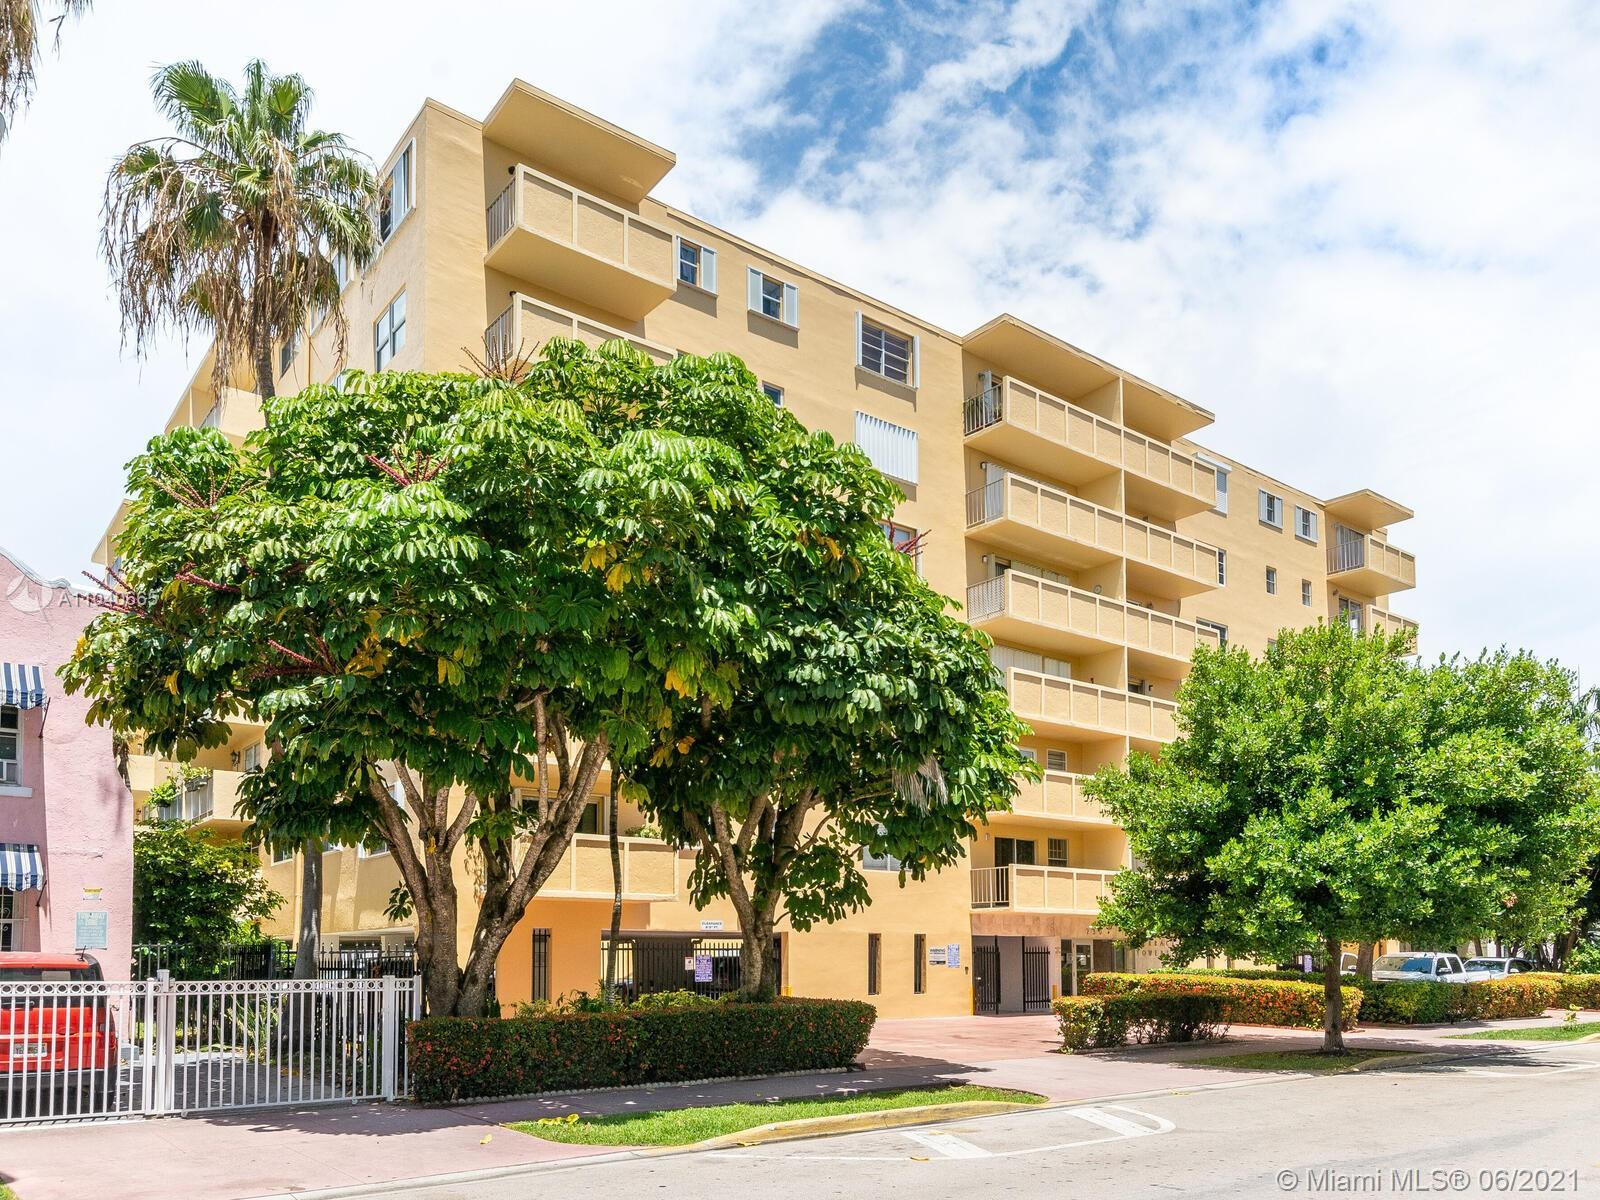 This highly desired corner 1 bedroom in the heart of South Beach is oozing with natural sunlight.